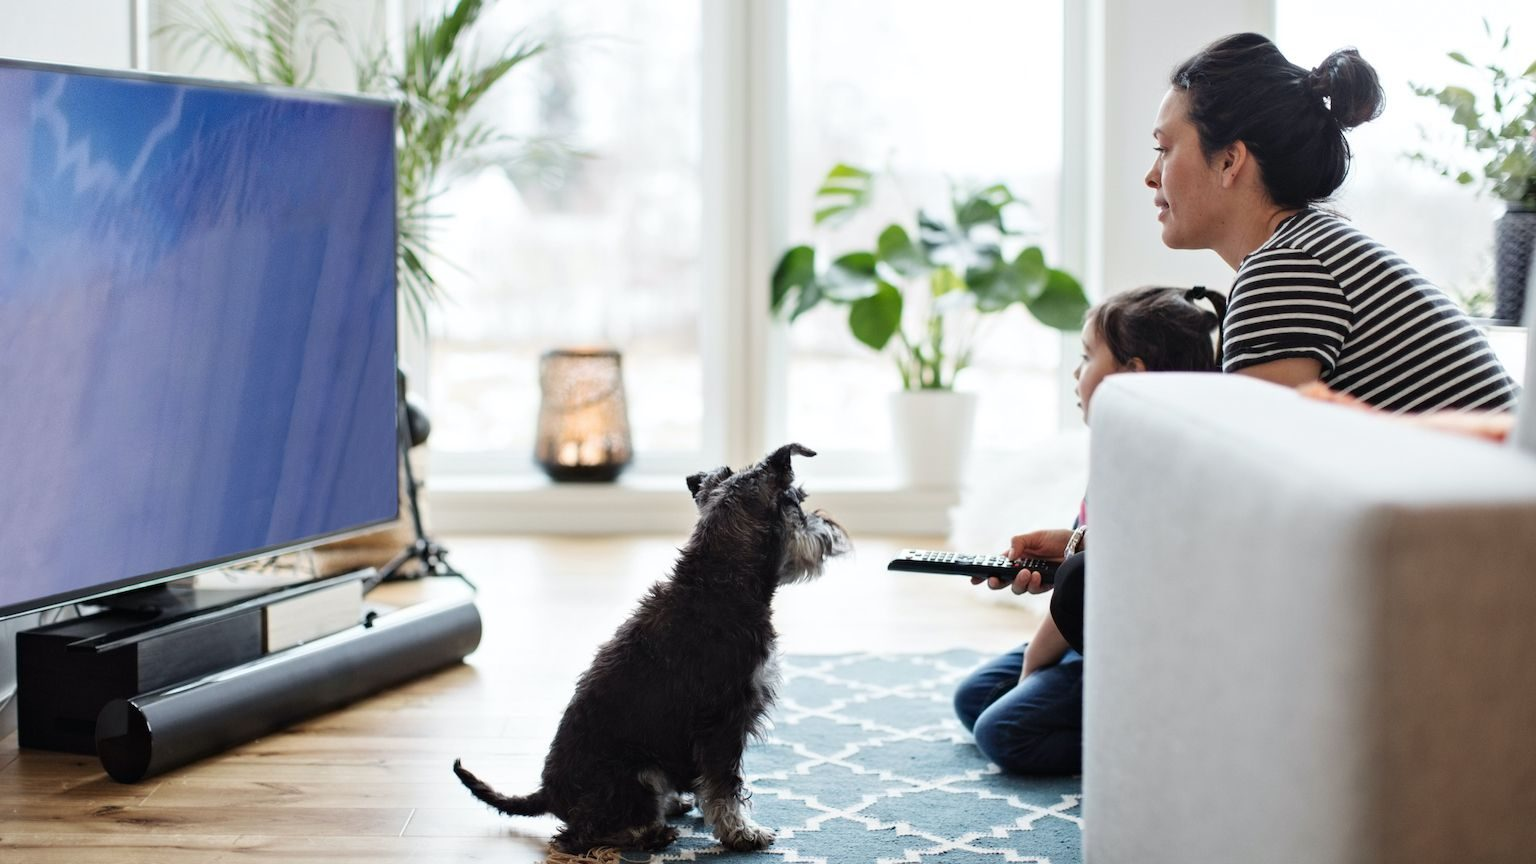 A woman watching TV with her young child and small dog